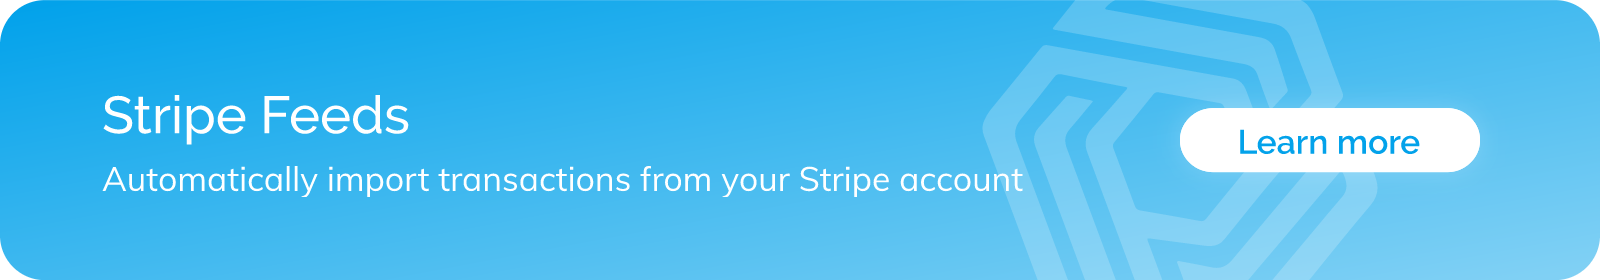 Automated Stripe Feeds